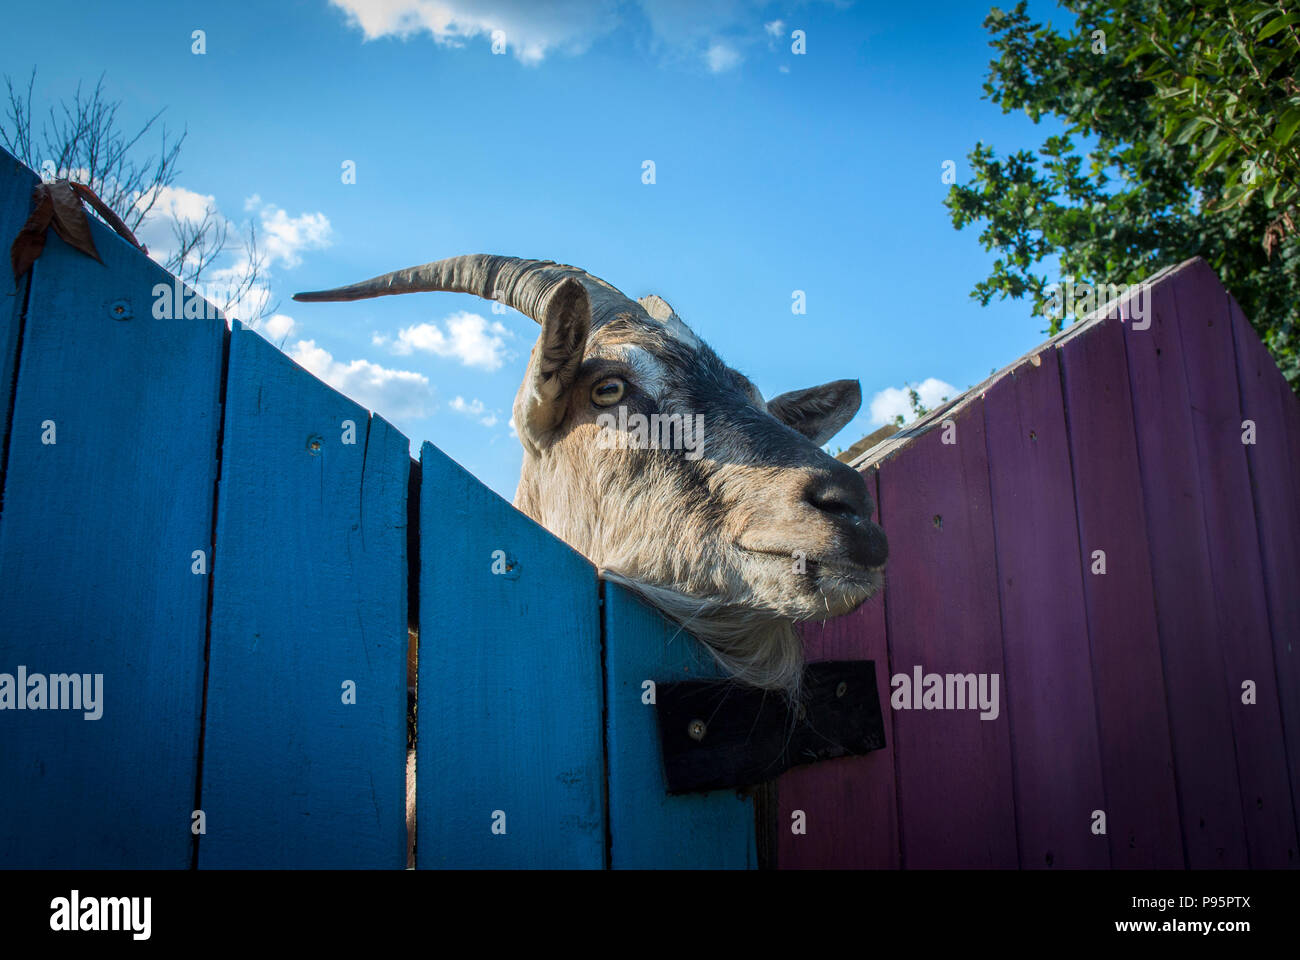 A goat takes a look around over the fence to its enclosure. - Stock Image